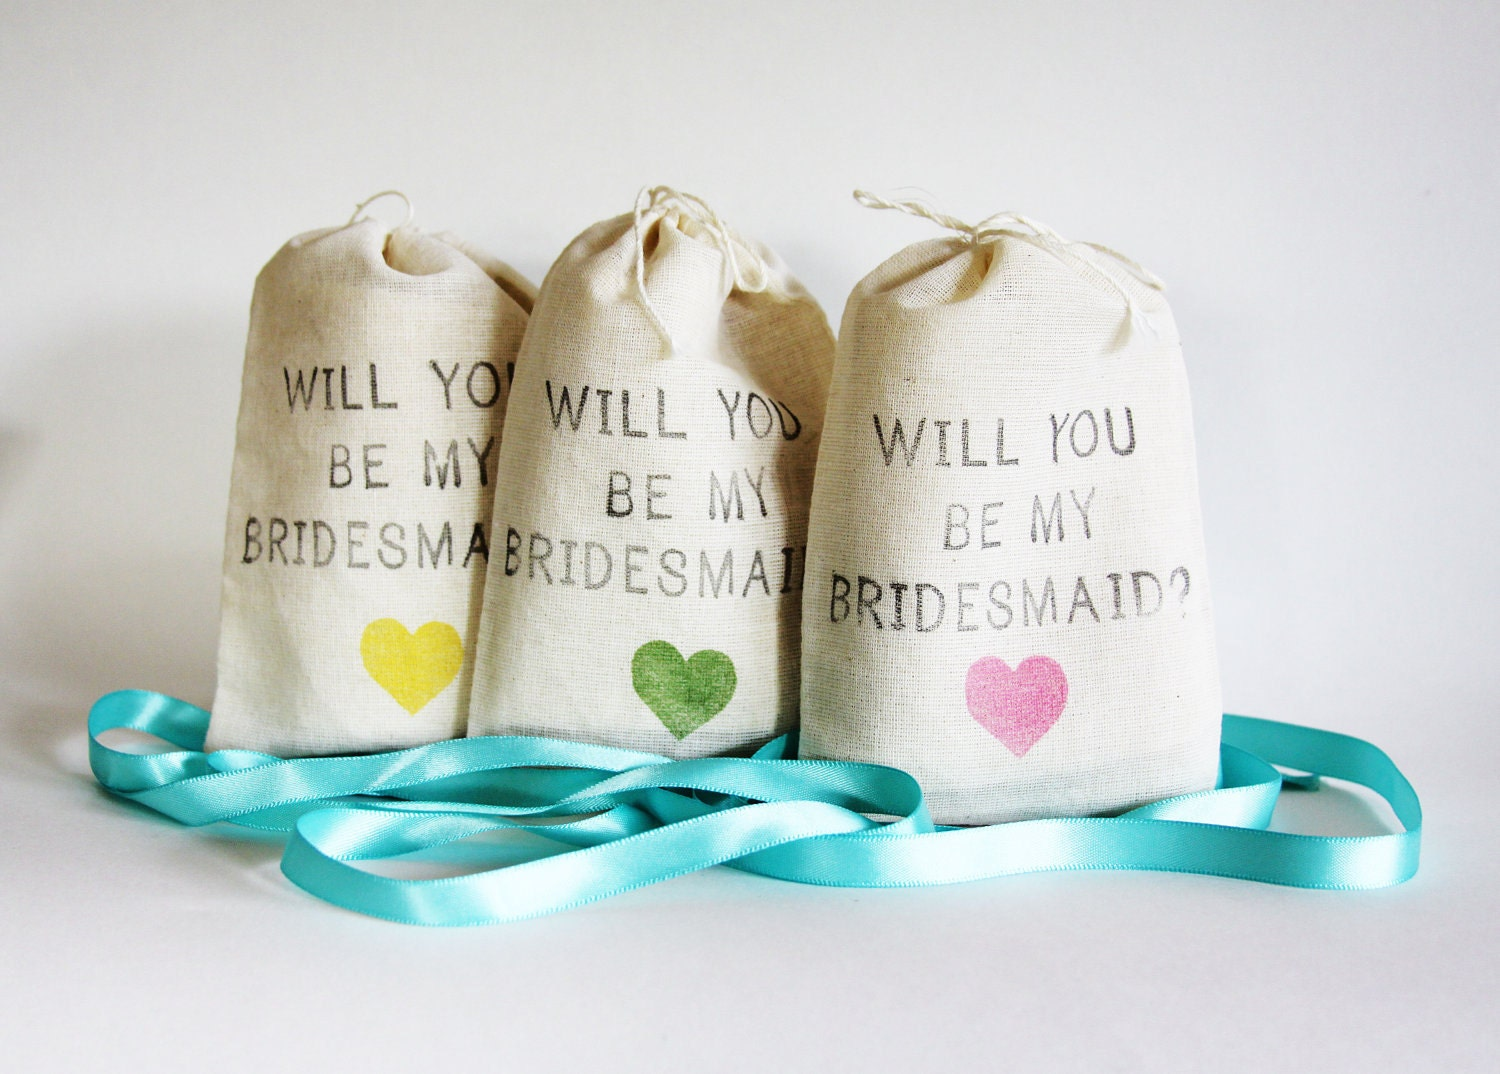 Will You Be My Bridesmaid muslin jewelry bags, rustic diy wedding